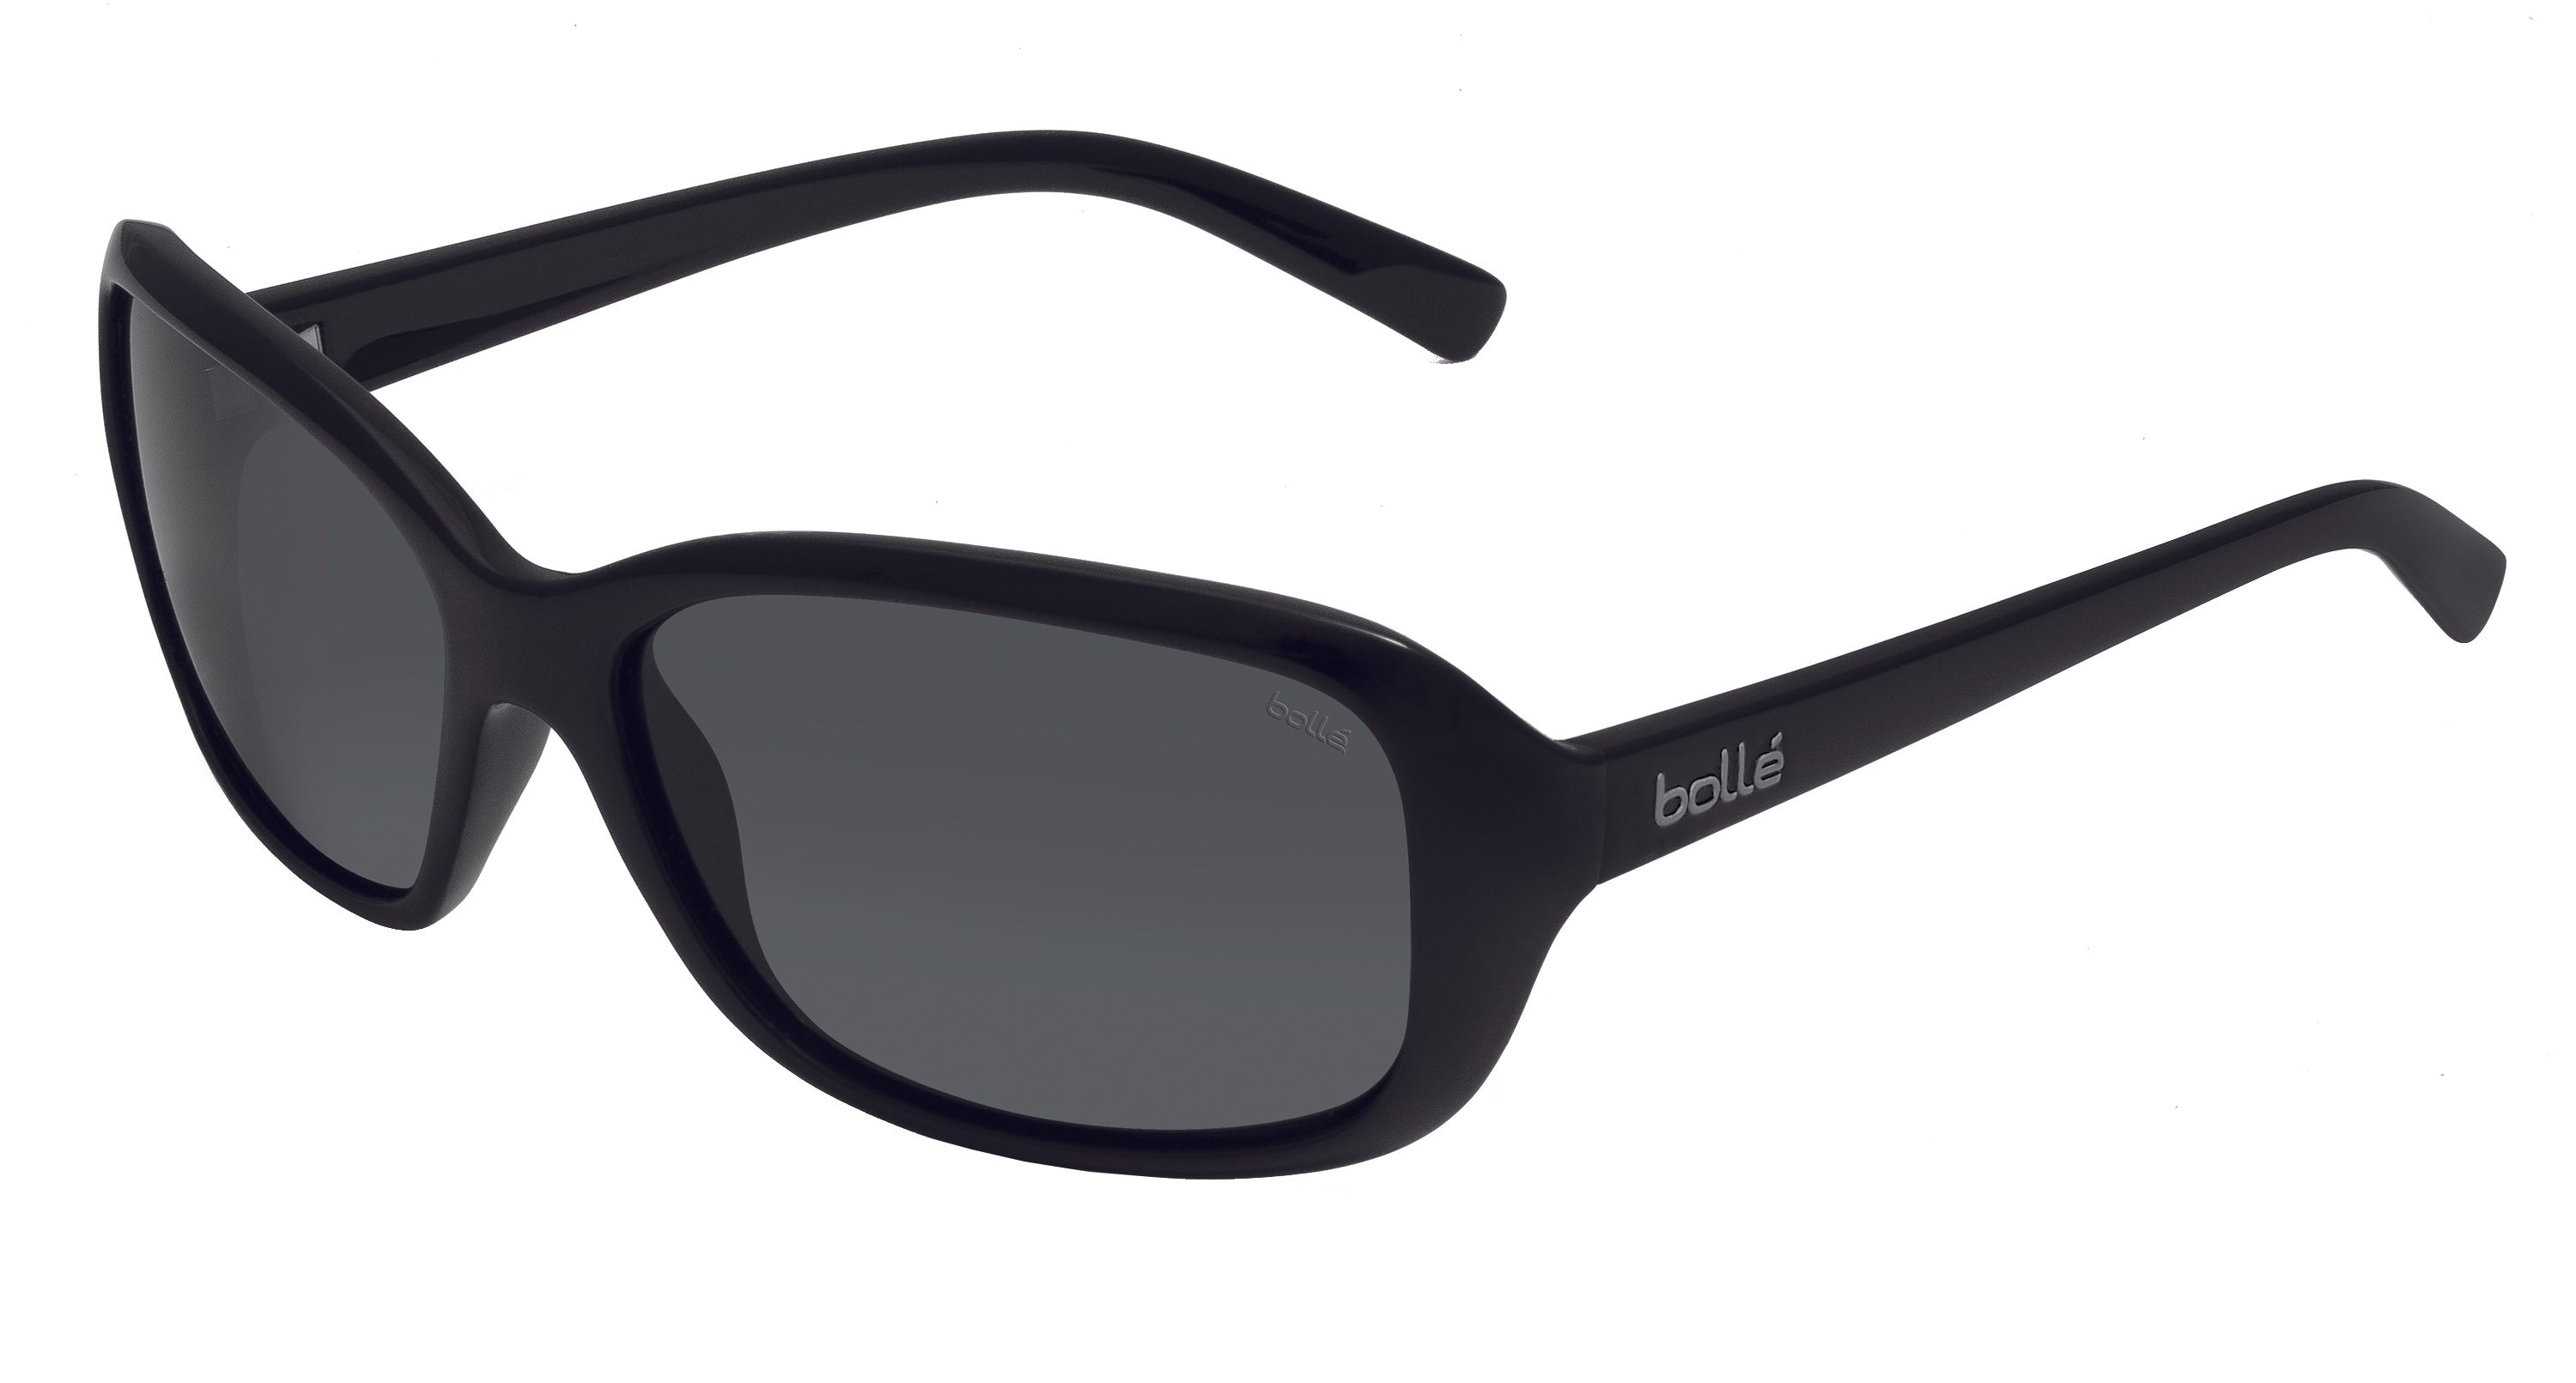 Bolle Molly Sunglasses